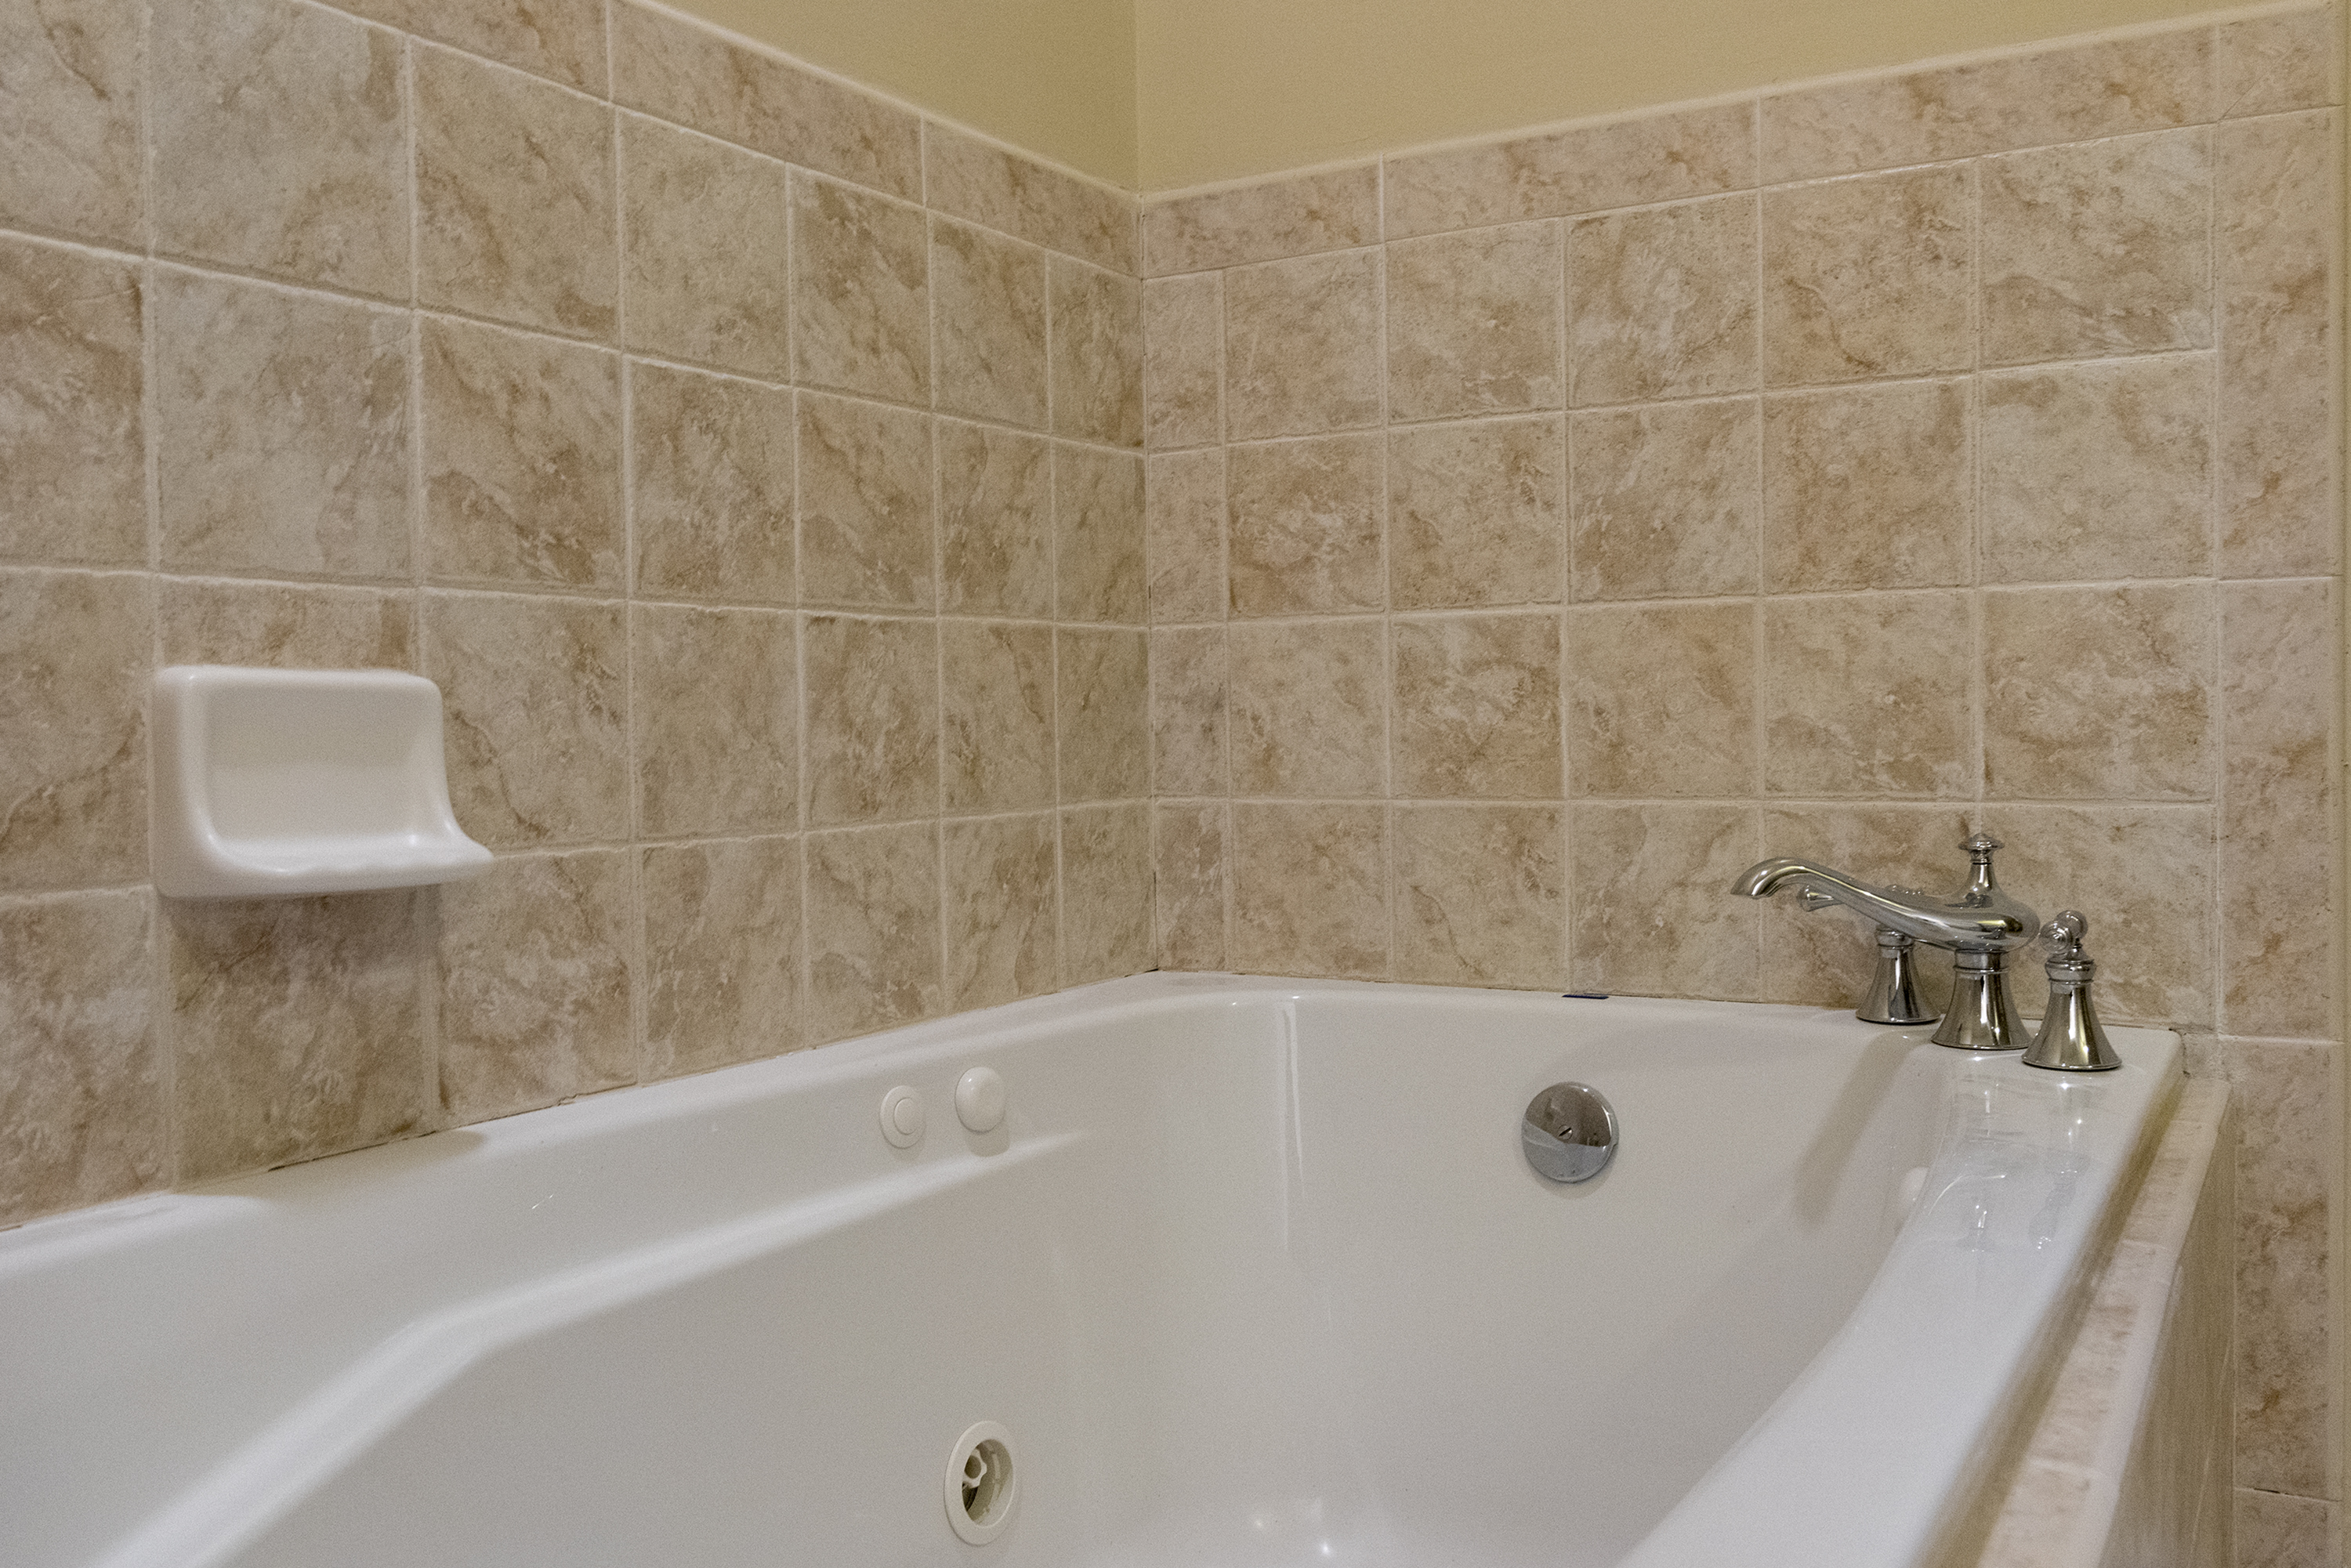 Soak in the jacuzzi tub after a day on the golf course.